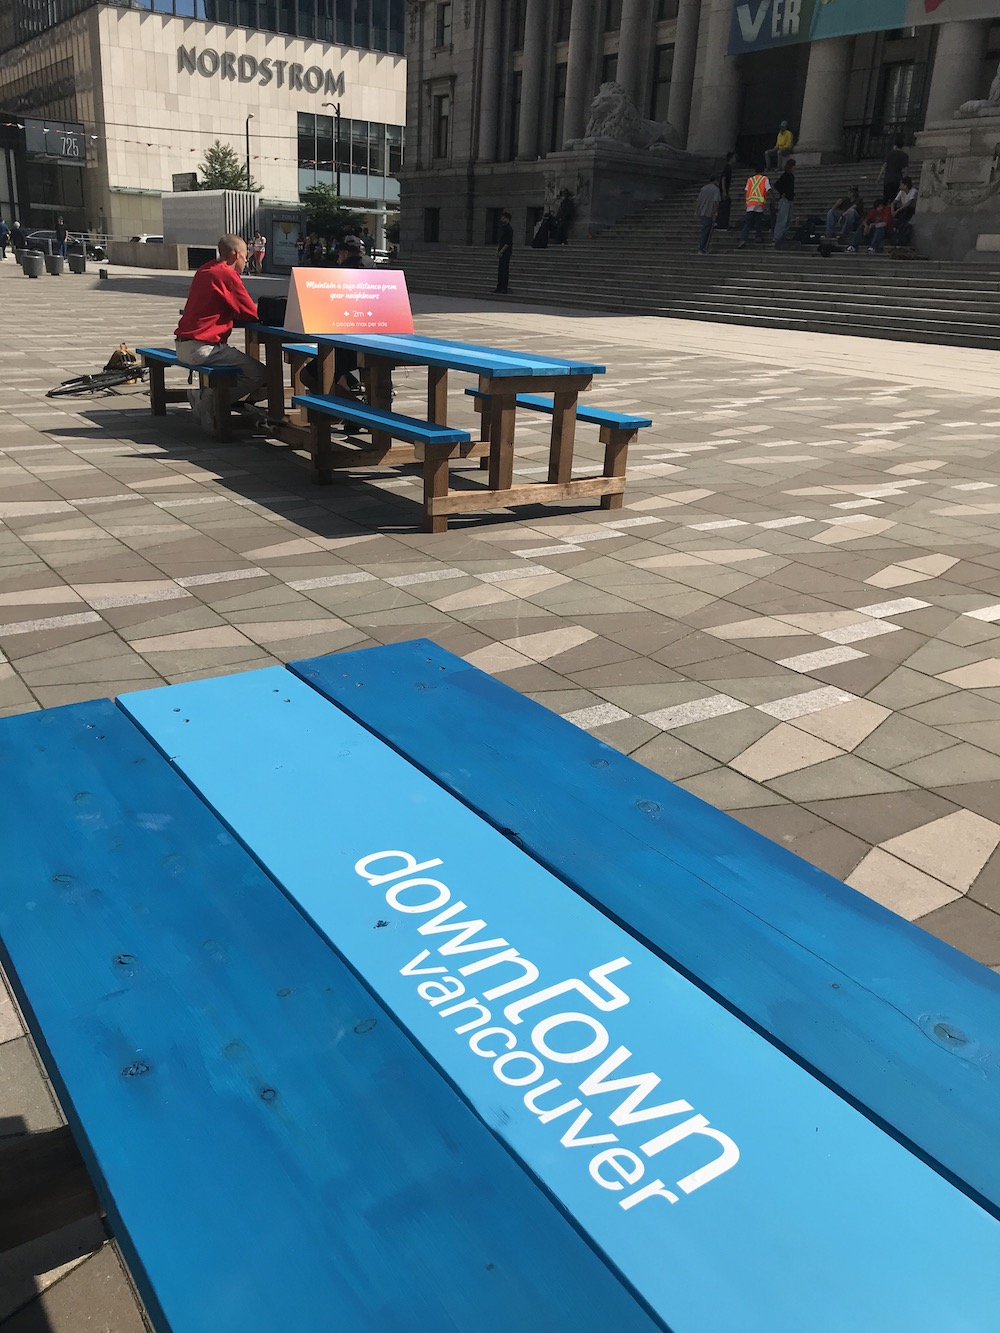 vancouver art gallery north plaza picnic tables